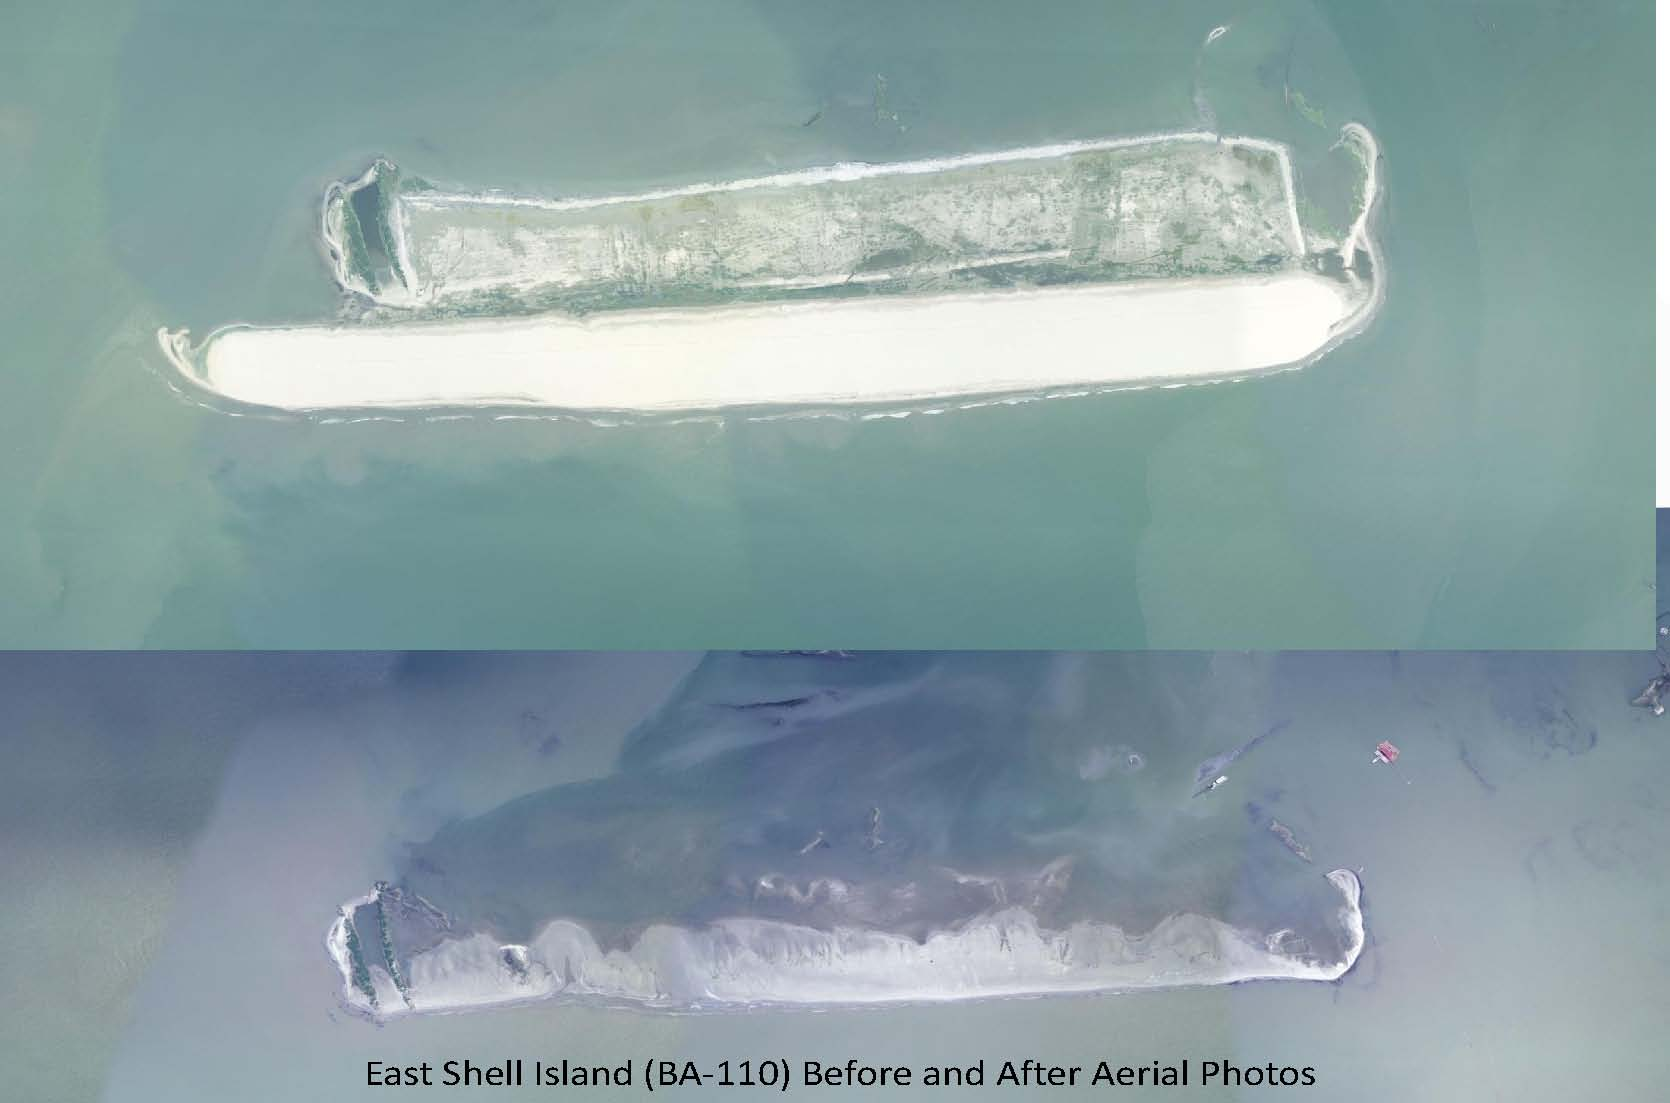 East Shell Island before after